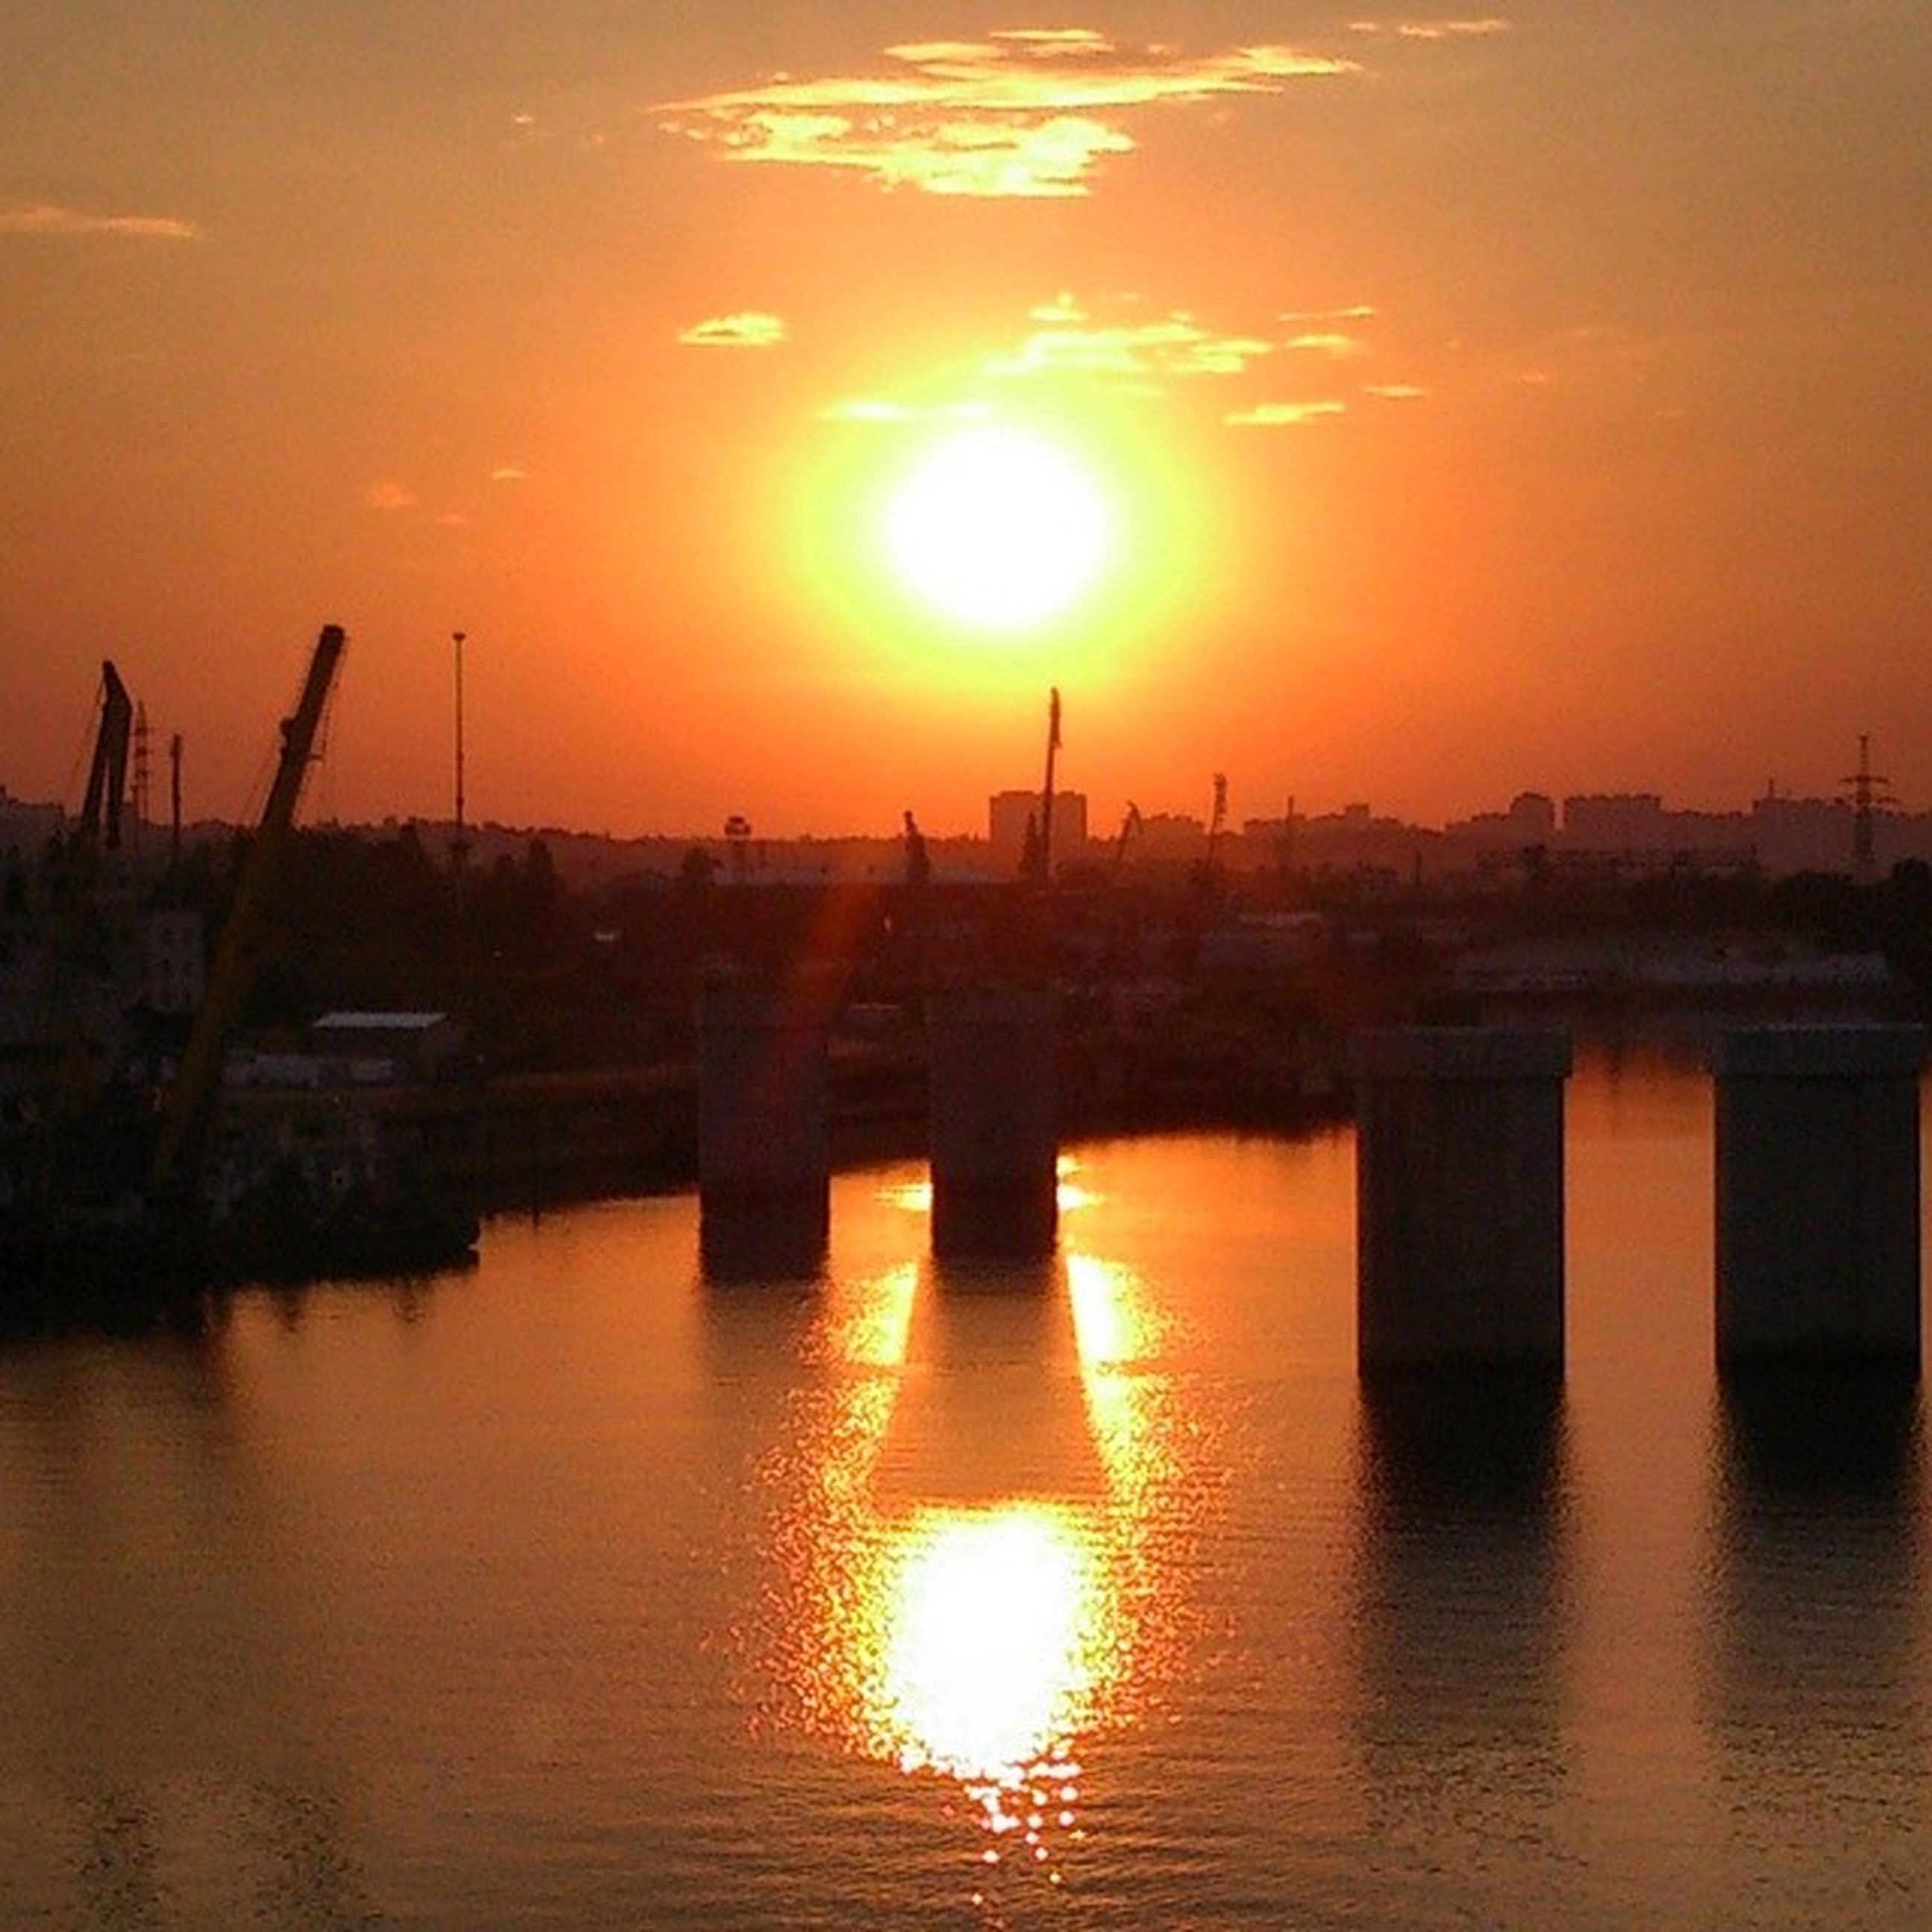 sunset, sun, orange color, water, reflection, silhouette, built structure, waterfront, architecture, sky, sunlight, scenics, beauty in nature, tranquility, idyllic, nature, river, tranquil scene, sea, building exterior